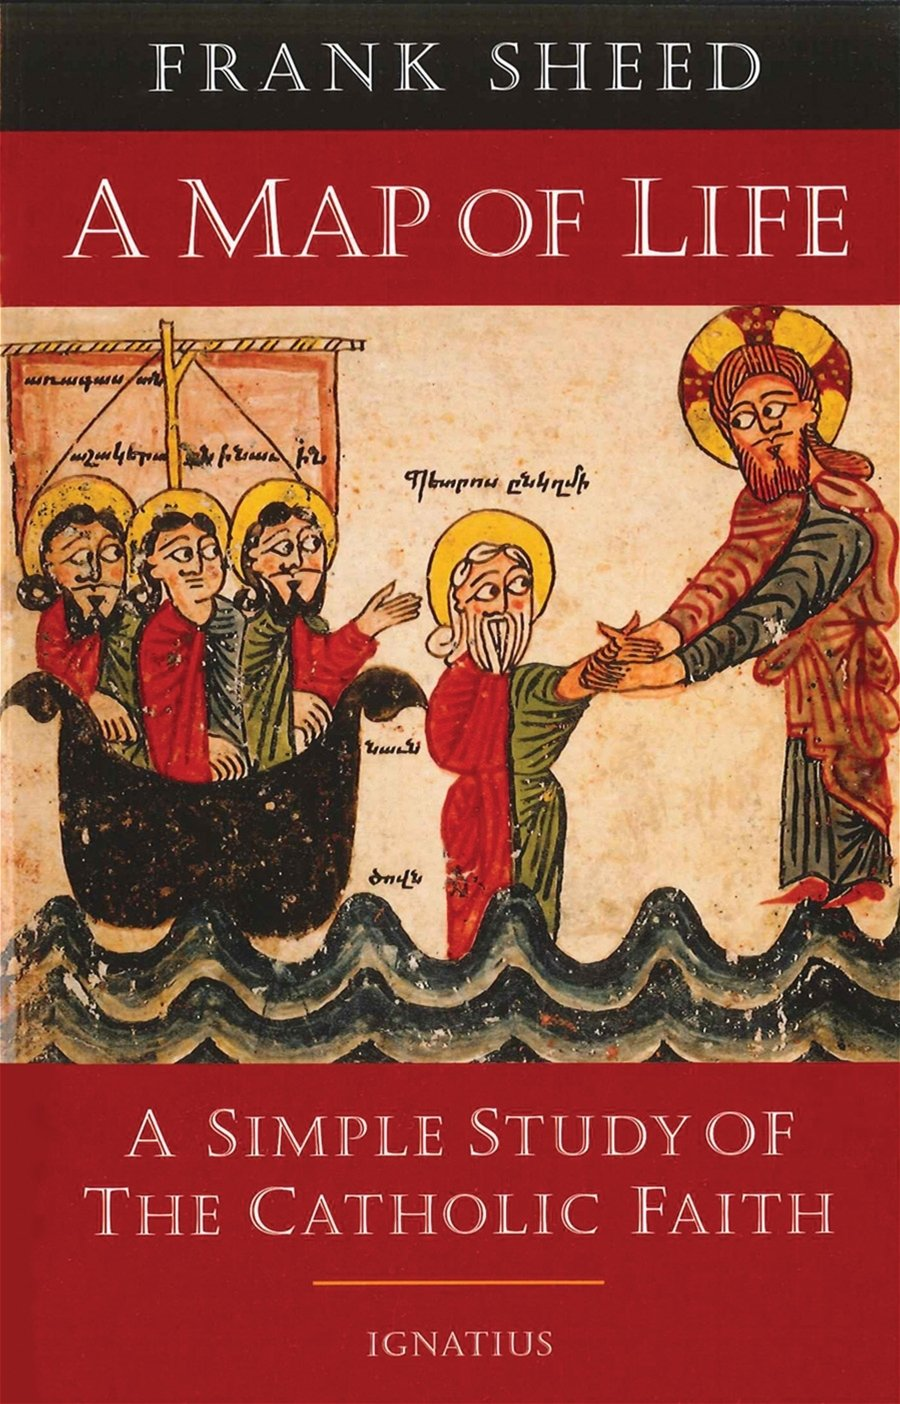 A Map of Life A Simple Study of the Catholic Faith By: Frank Sheed